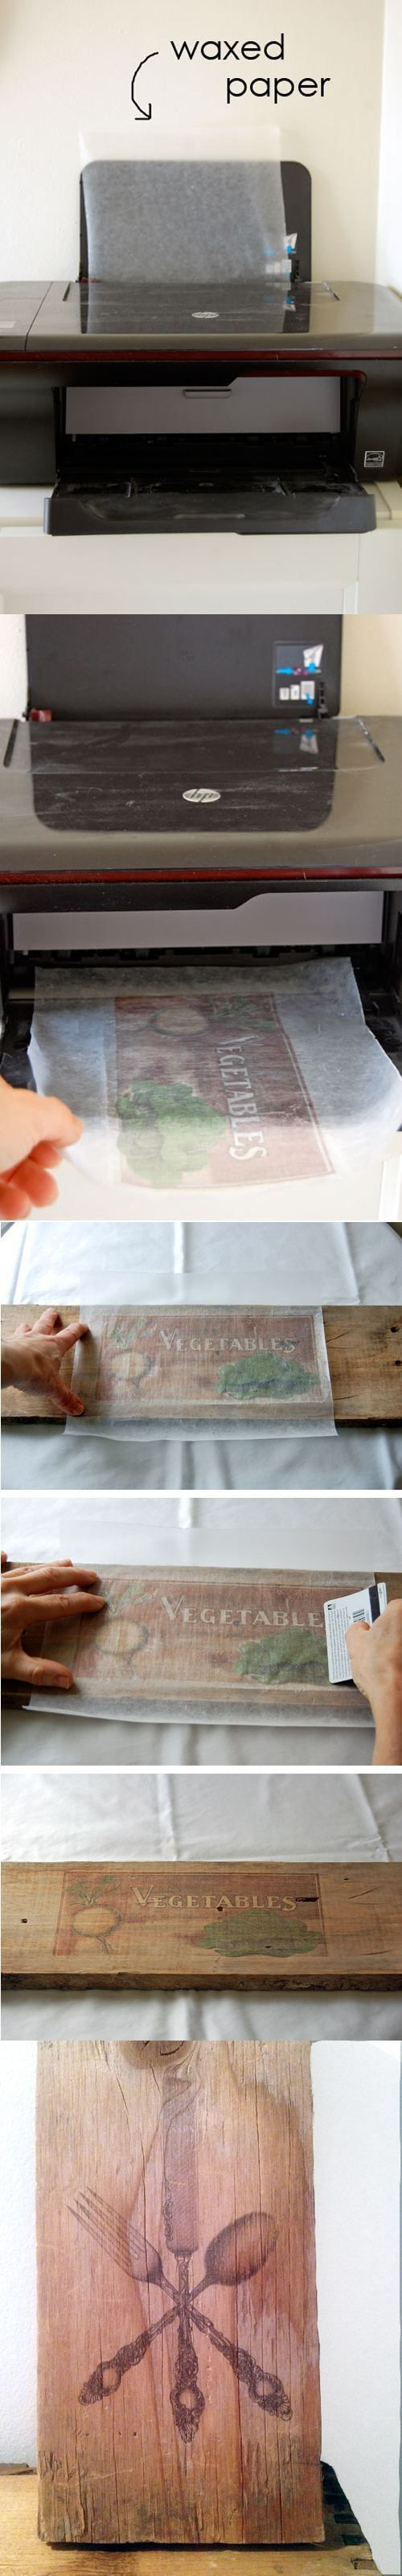 How To Print Pictures On Woodwaxed Paper Transfer Craftastic